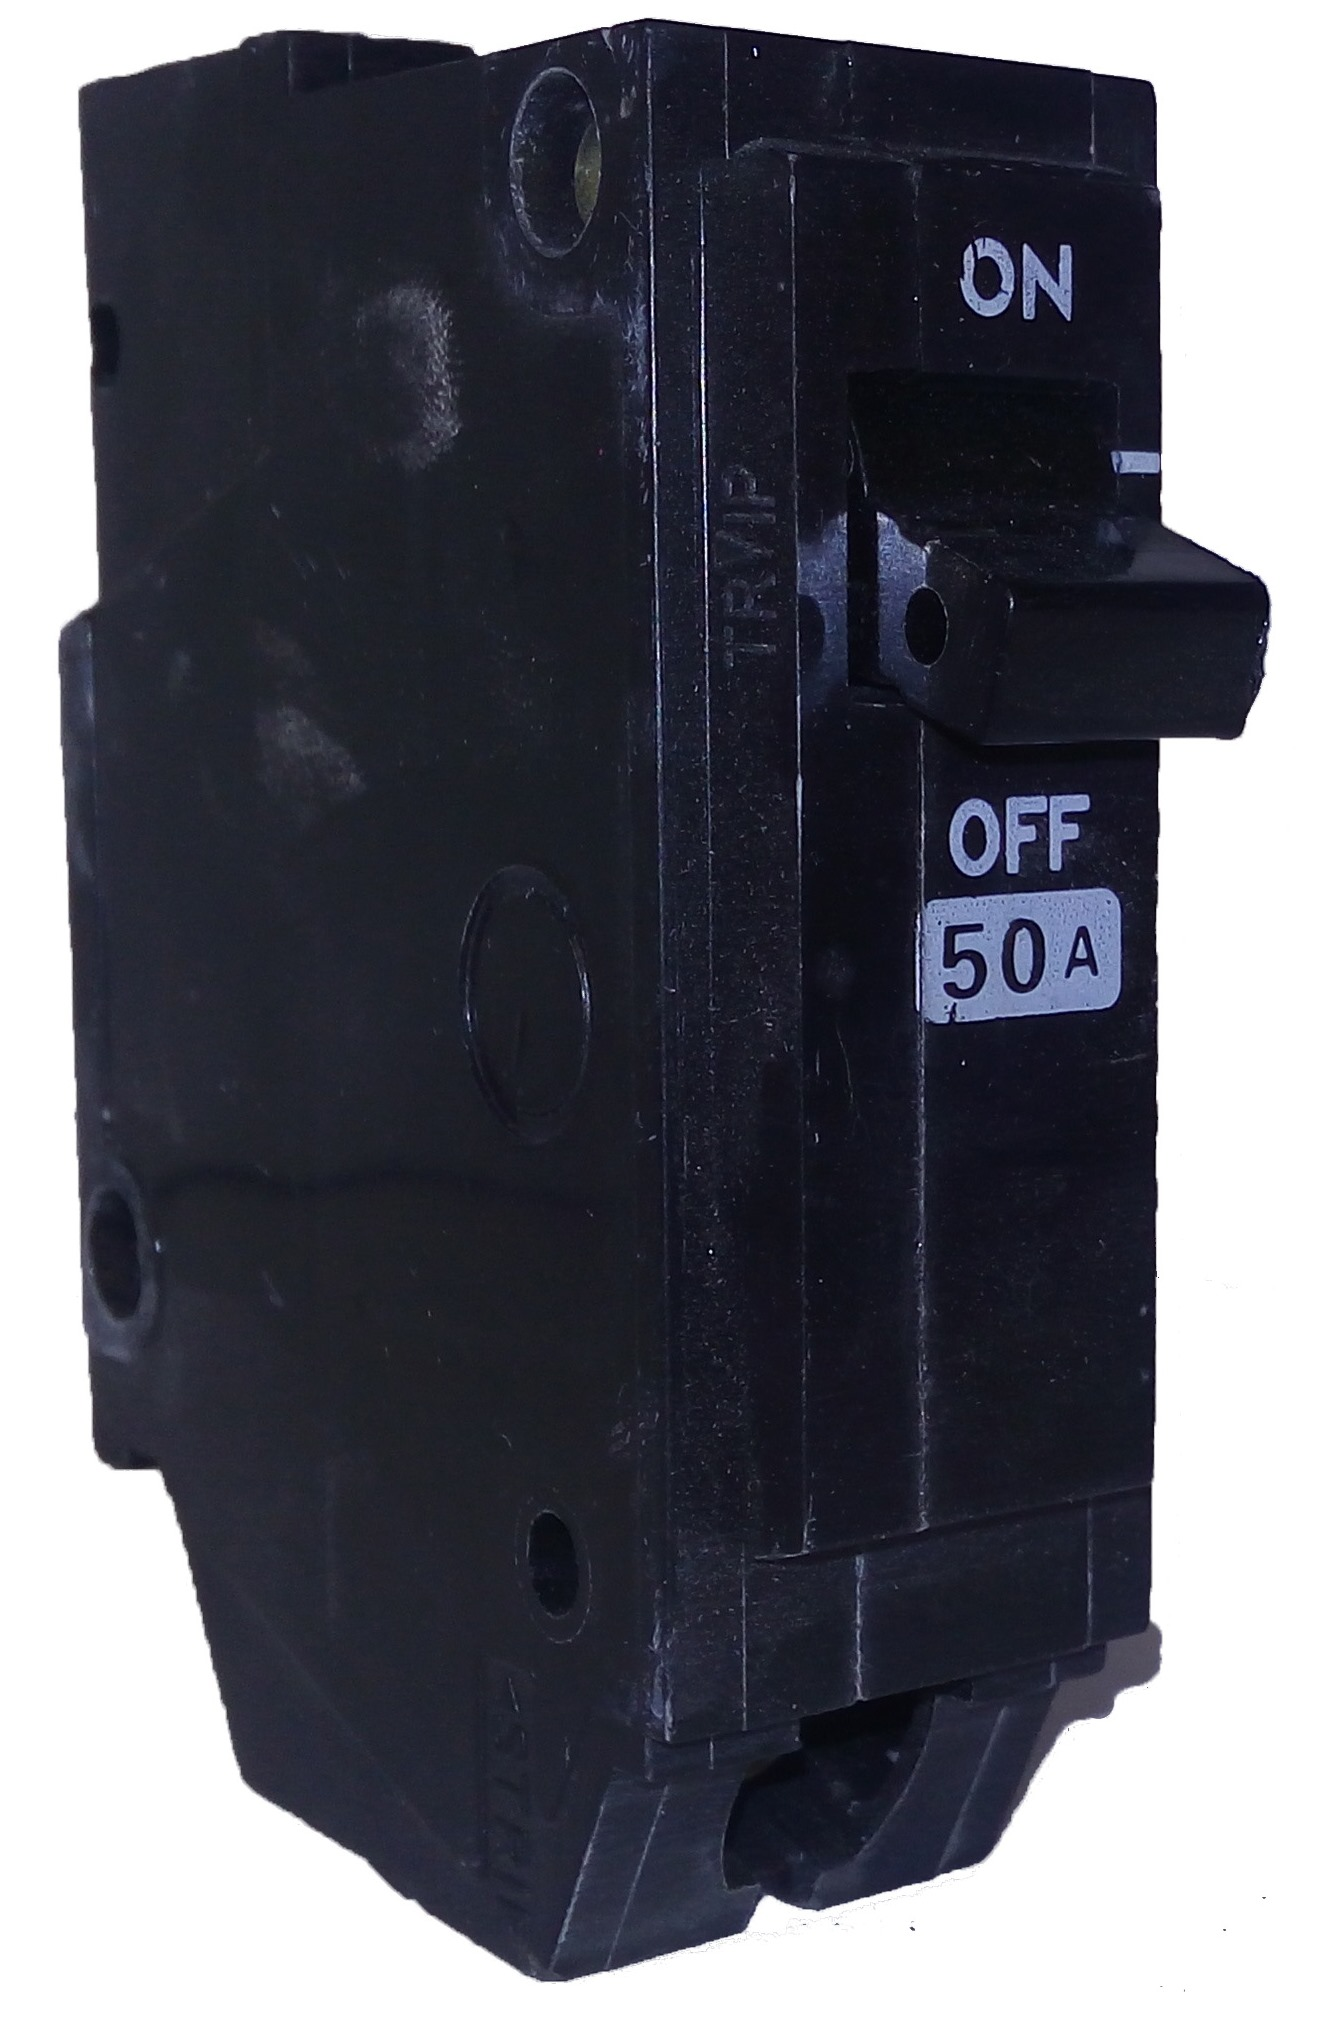 INTERRUPTOR TERM. 1 X 50 A TIPO QP